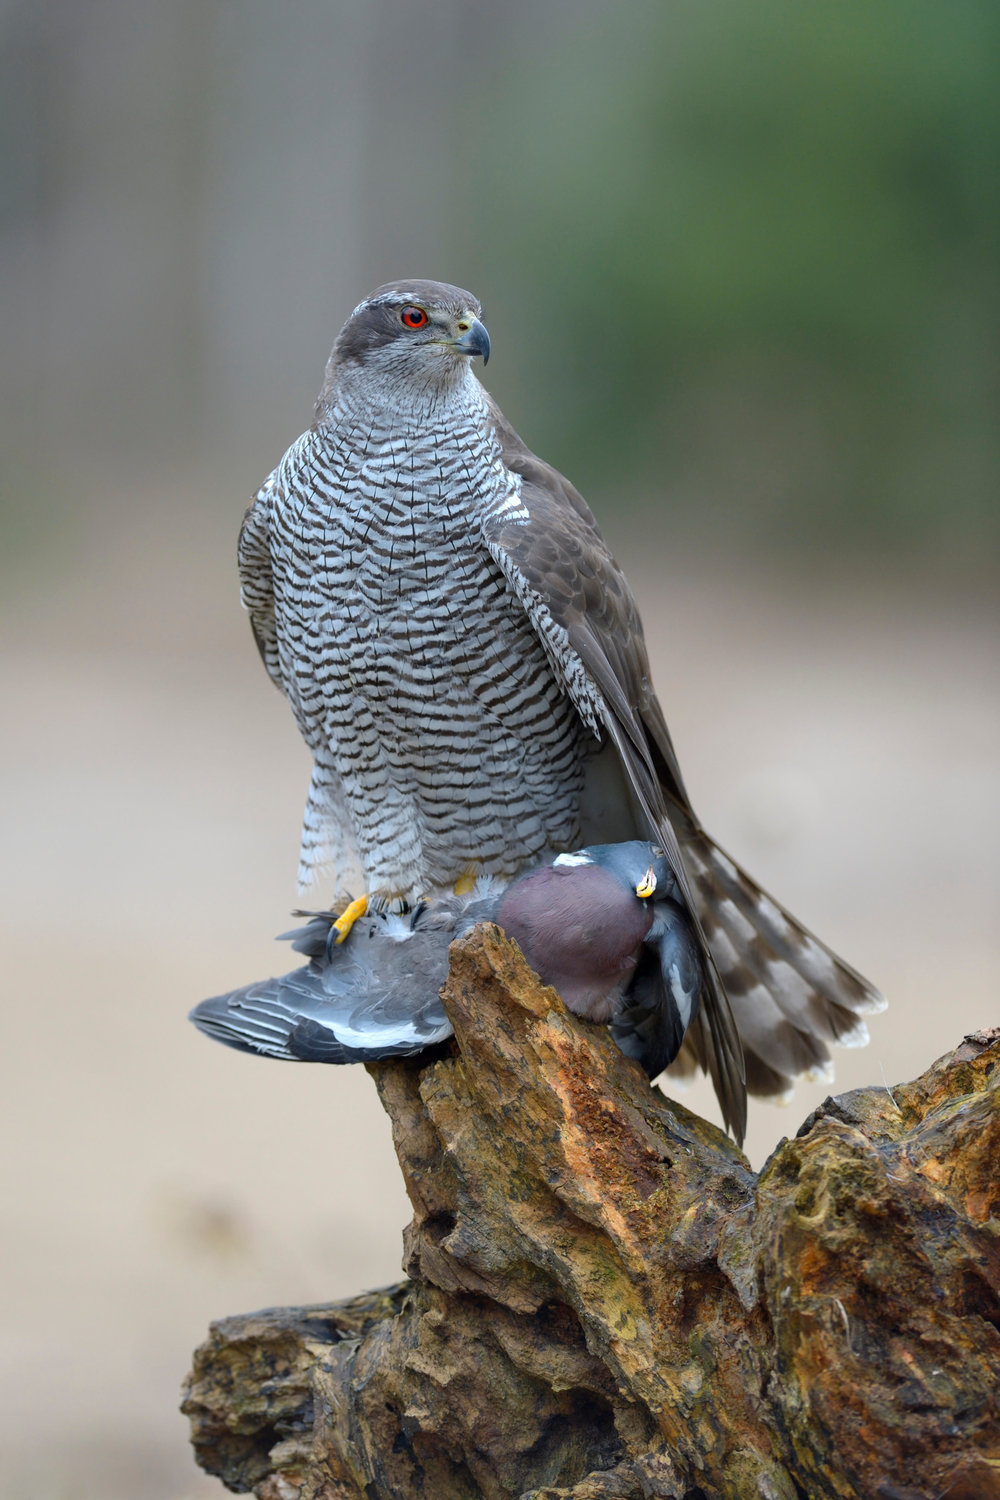 Goshawk with Woodpigeon (note the massive size of the hawk)